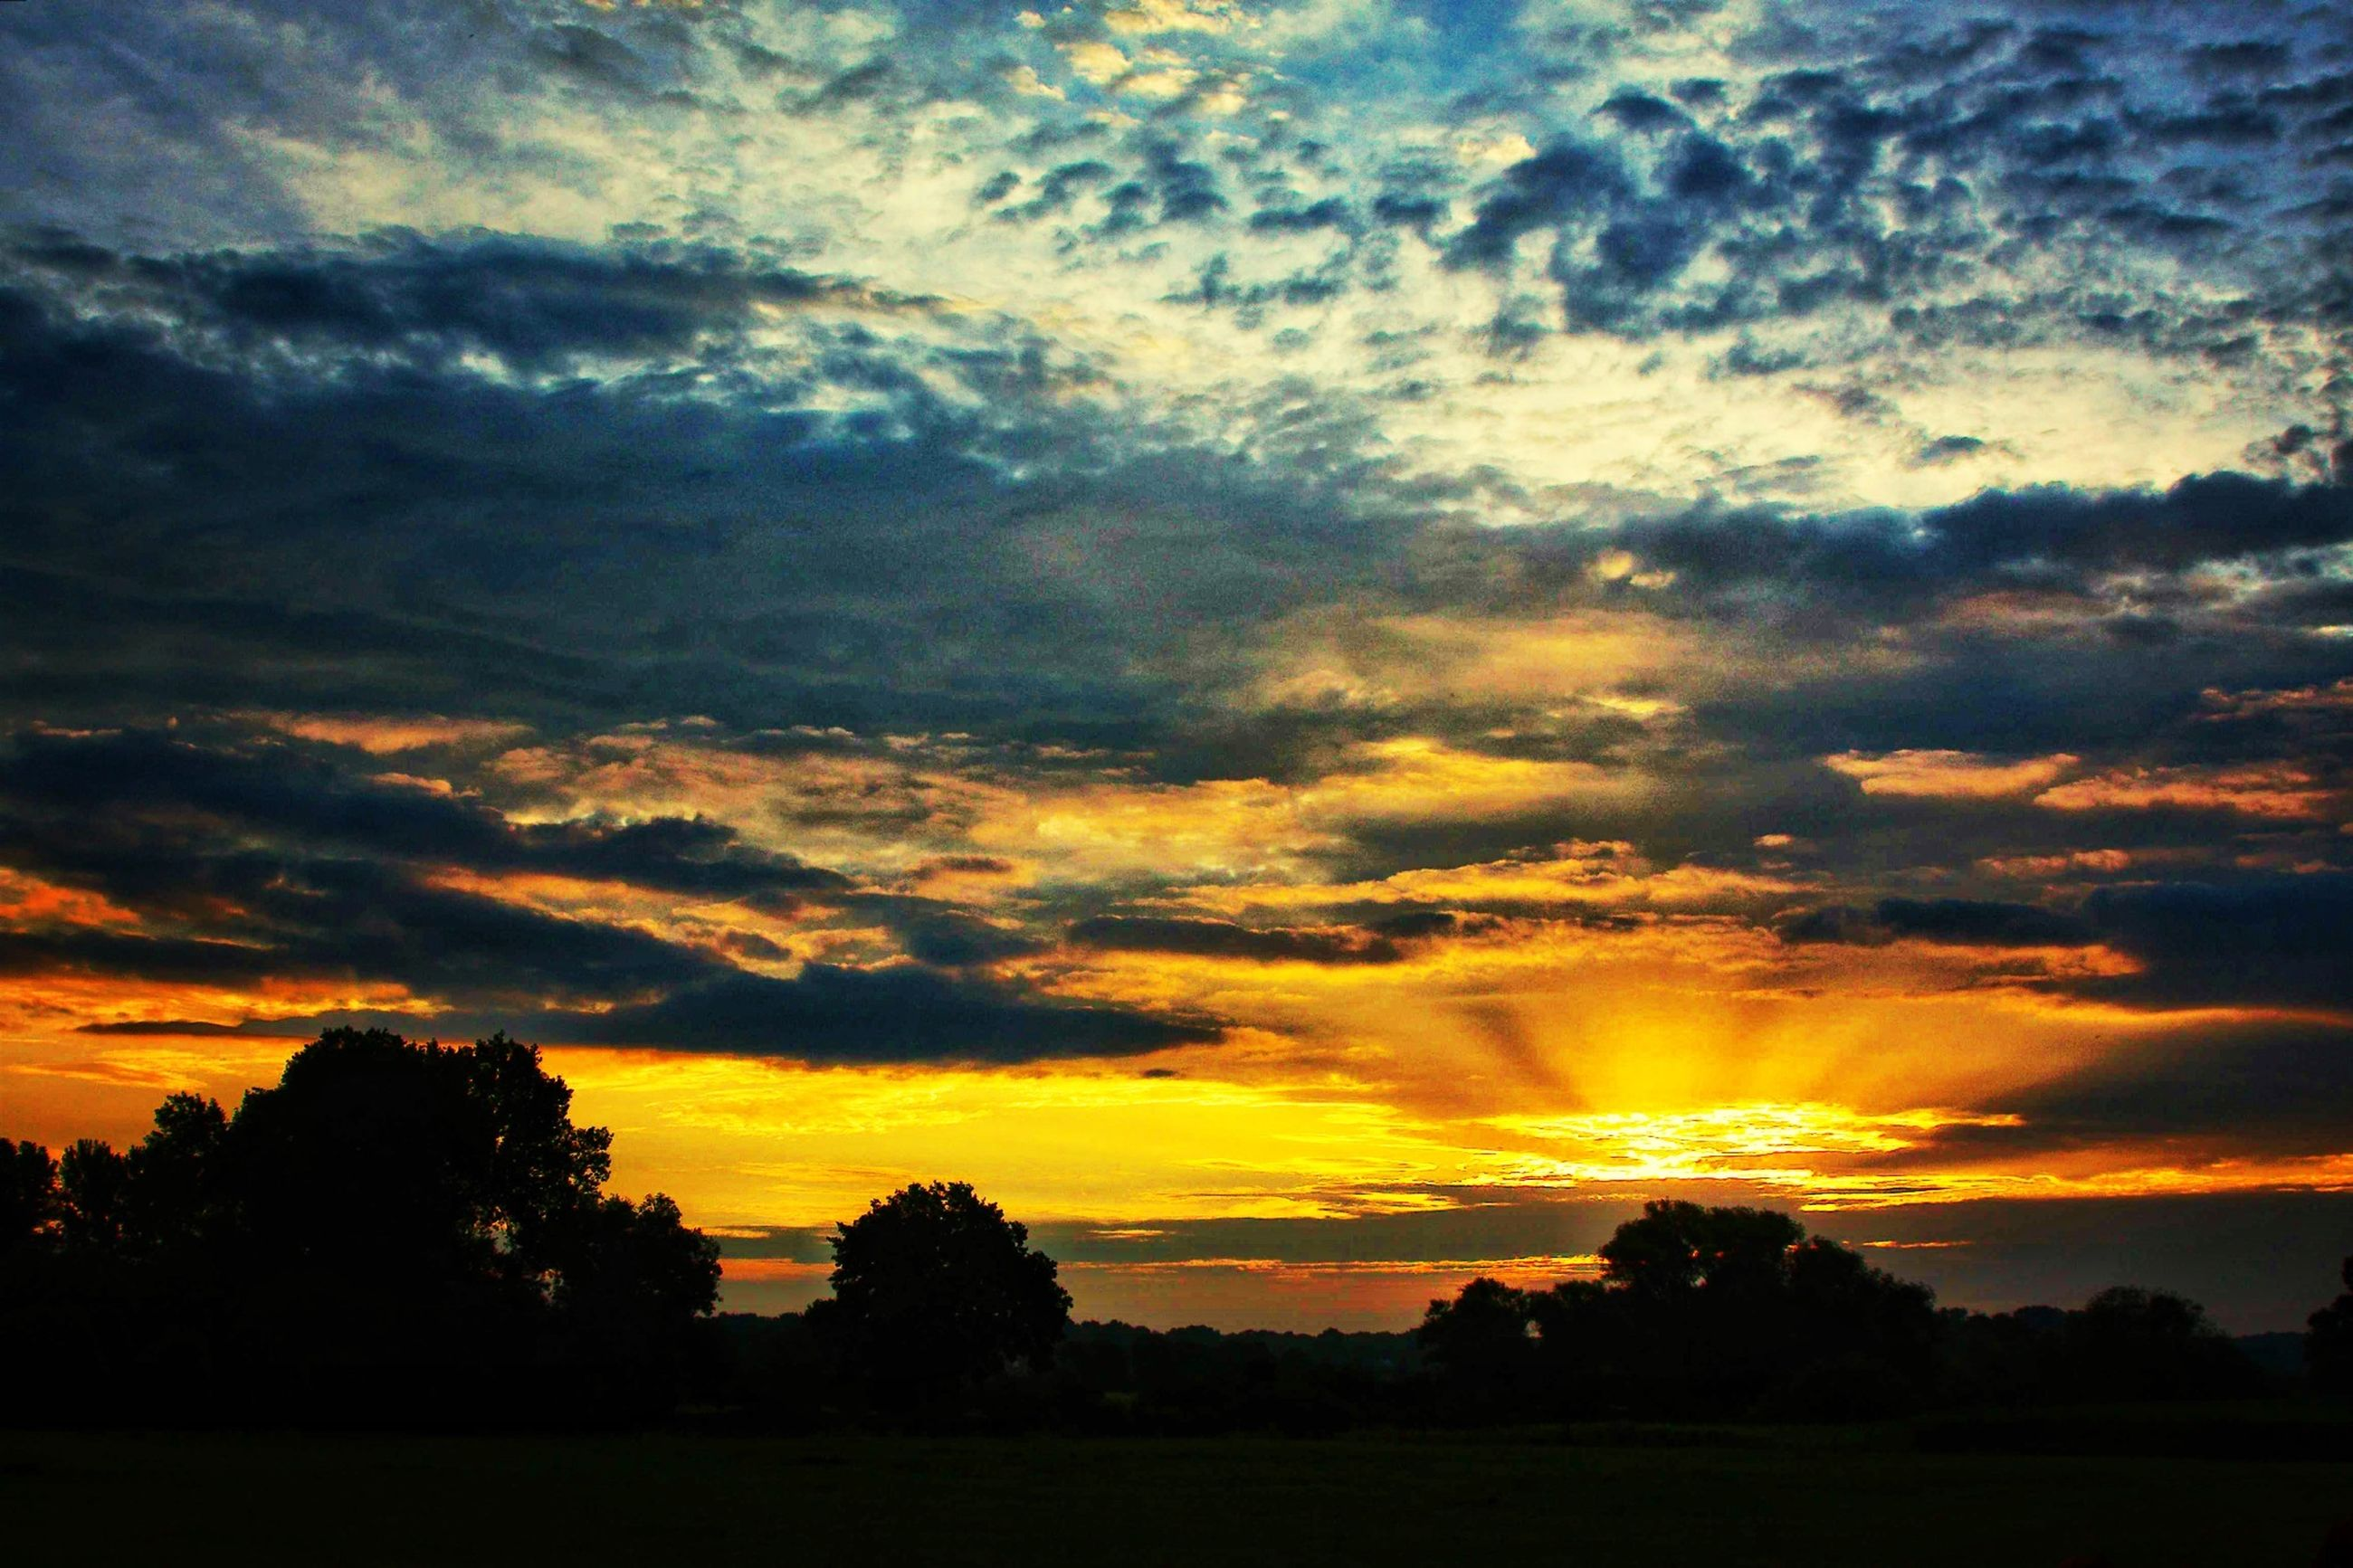 sunset, silhouette, sky, scenics, tranquil scene, beauty in nature, tranquility, cloud - sky, orange color, tree, idyllic, landscape, nature, dramatic sky, cloud, majestic, outdoors, moody sky, cloudy, dark